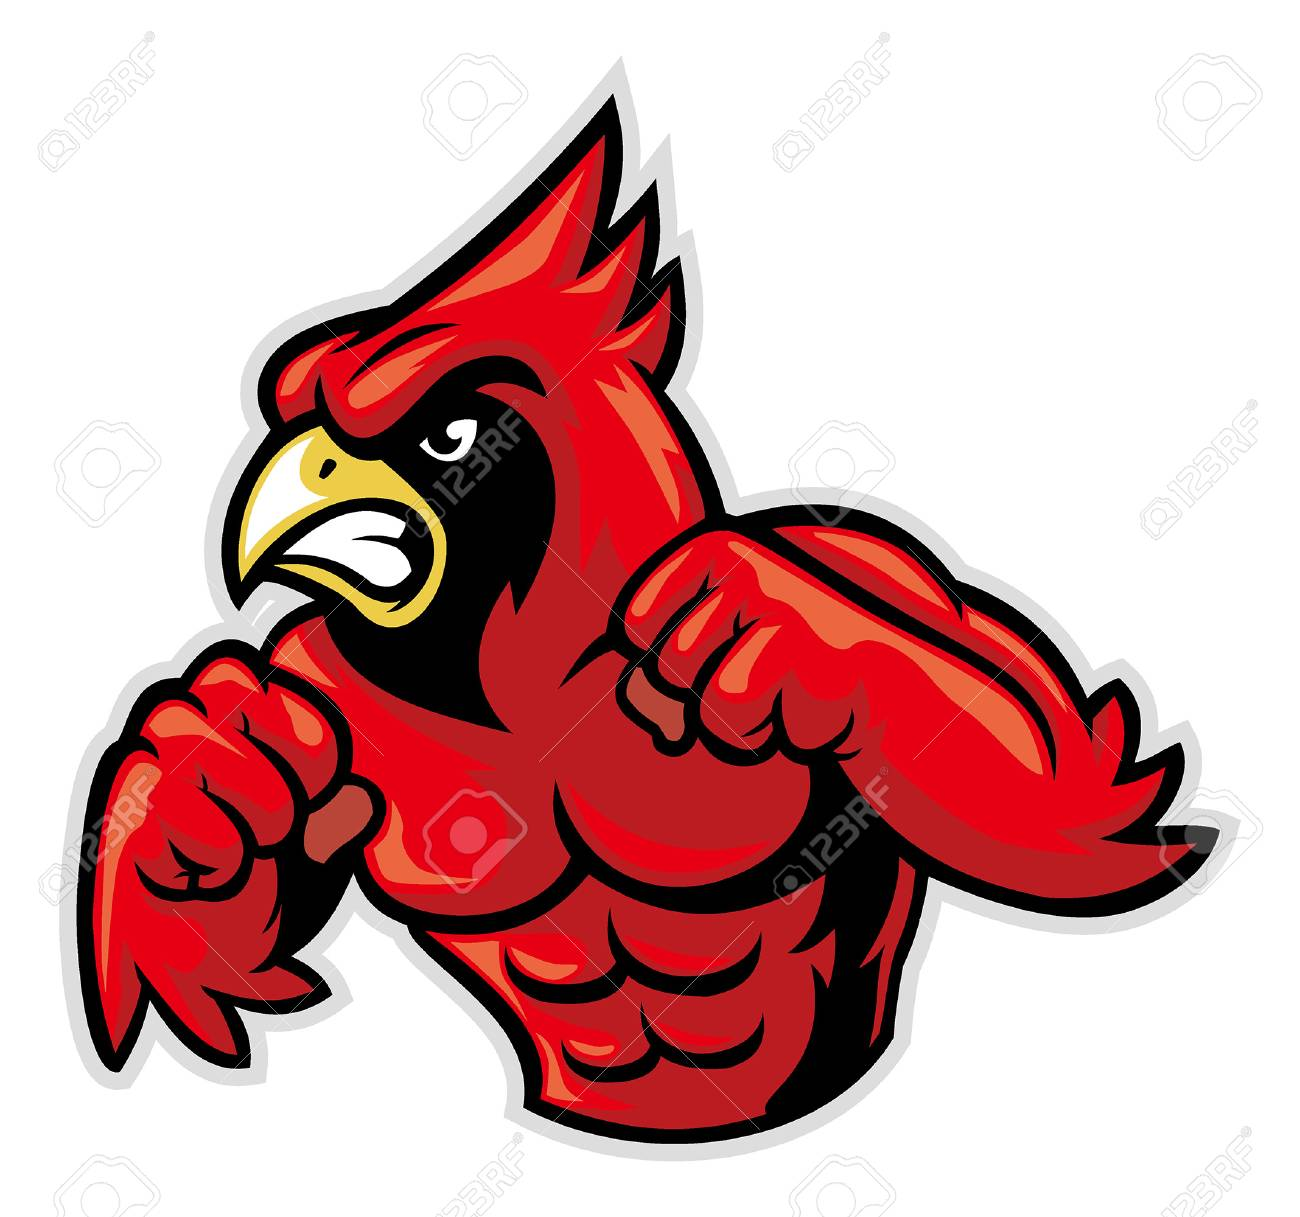 angry cardinal mascot ready to fight.